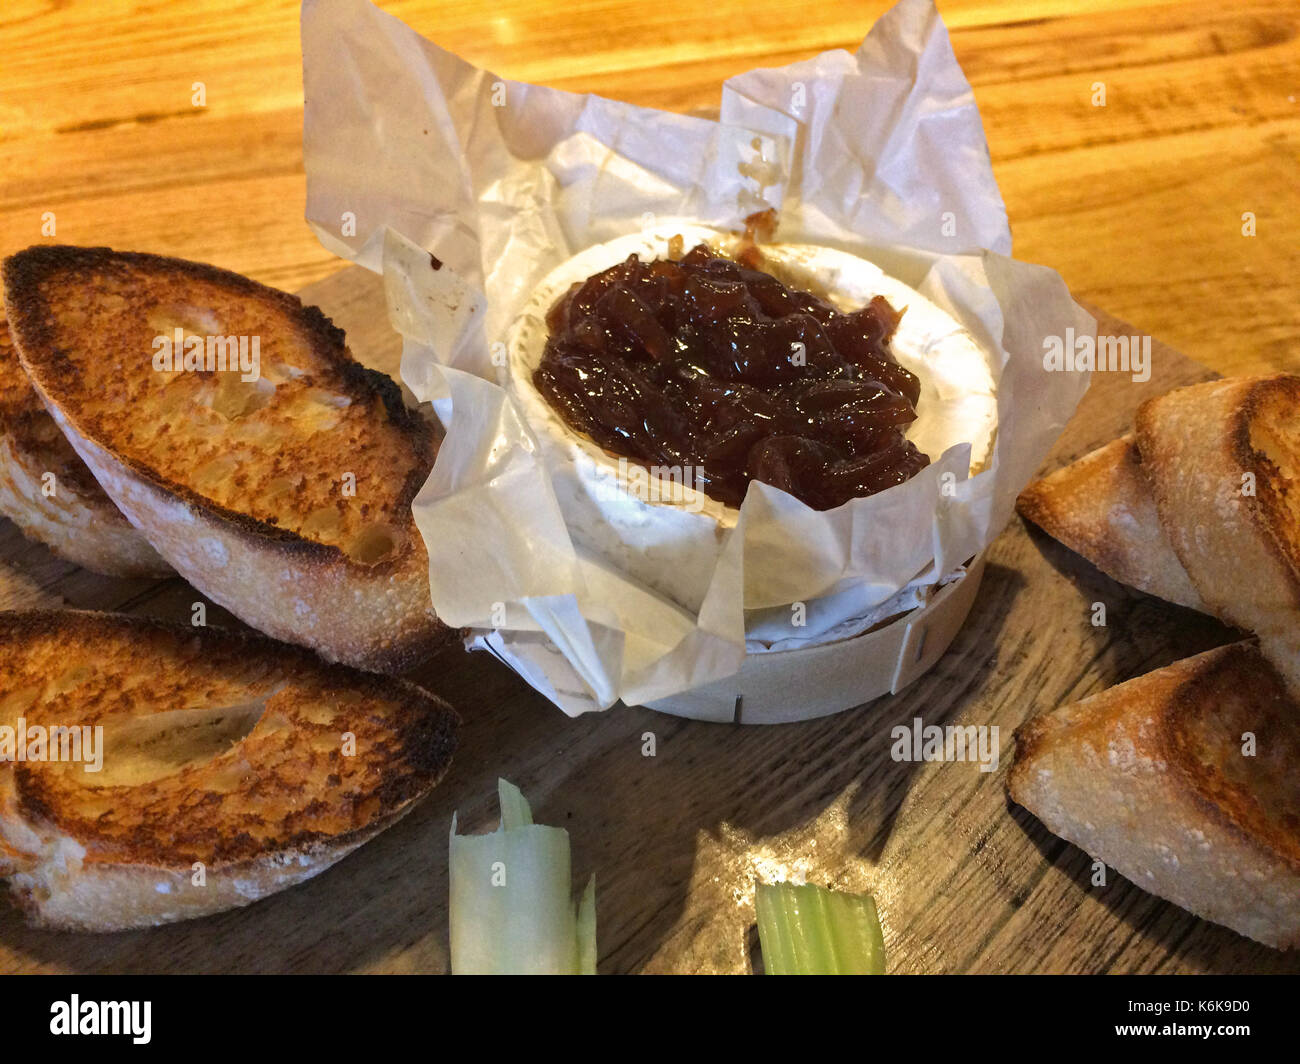 Typical UK's starter - Baked Camembert cheese with onion chutney - Stock Image